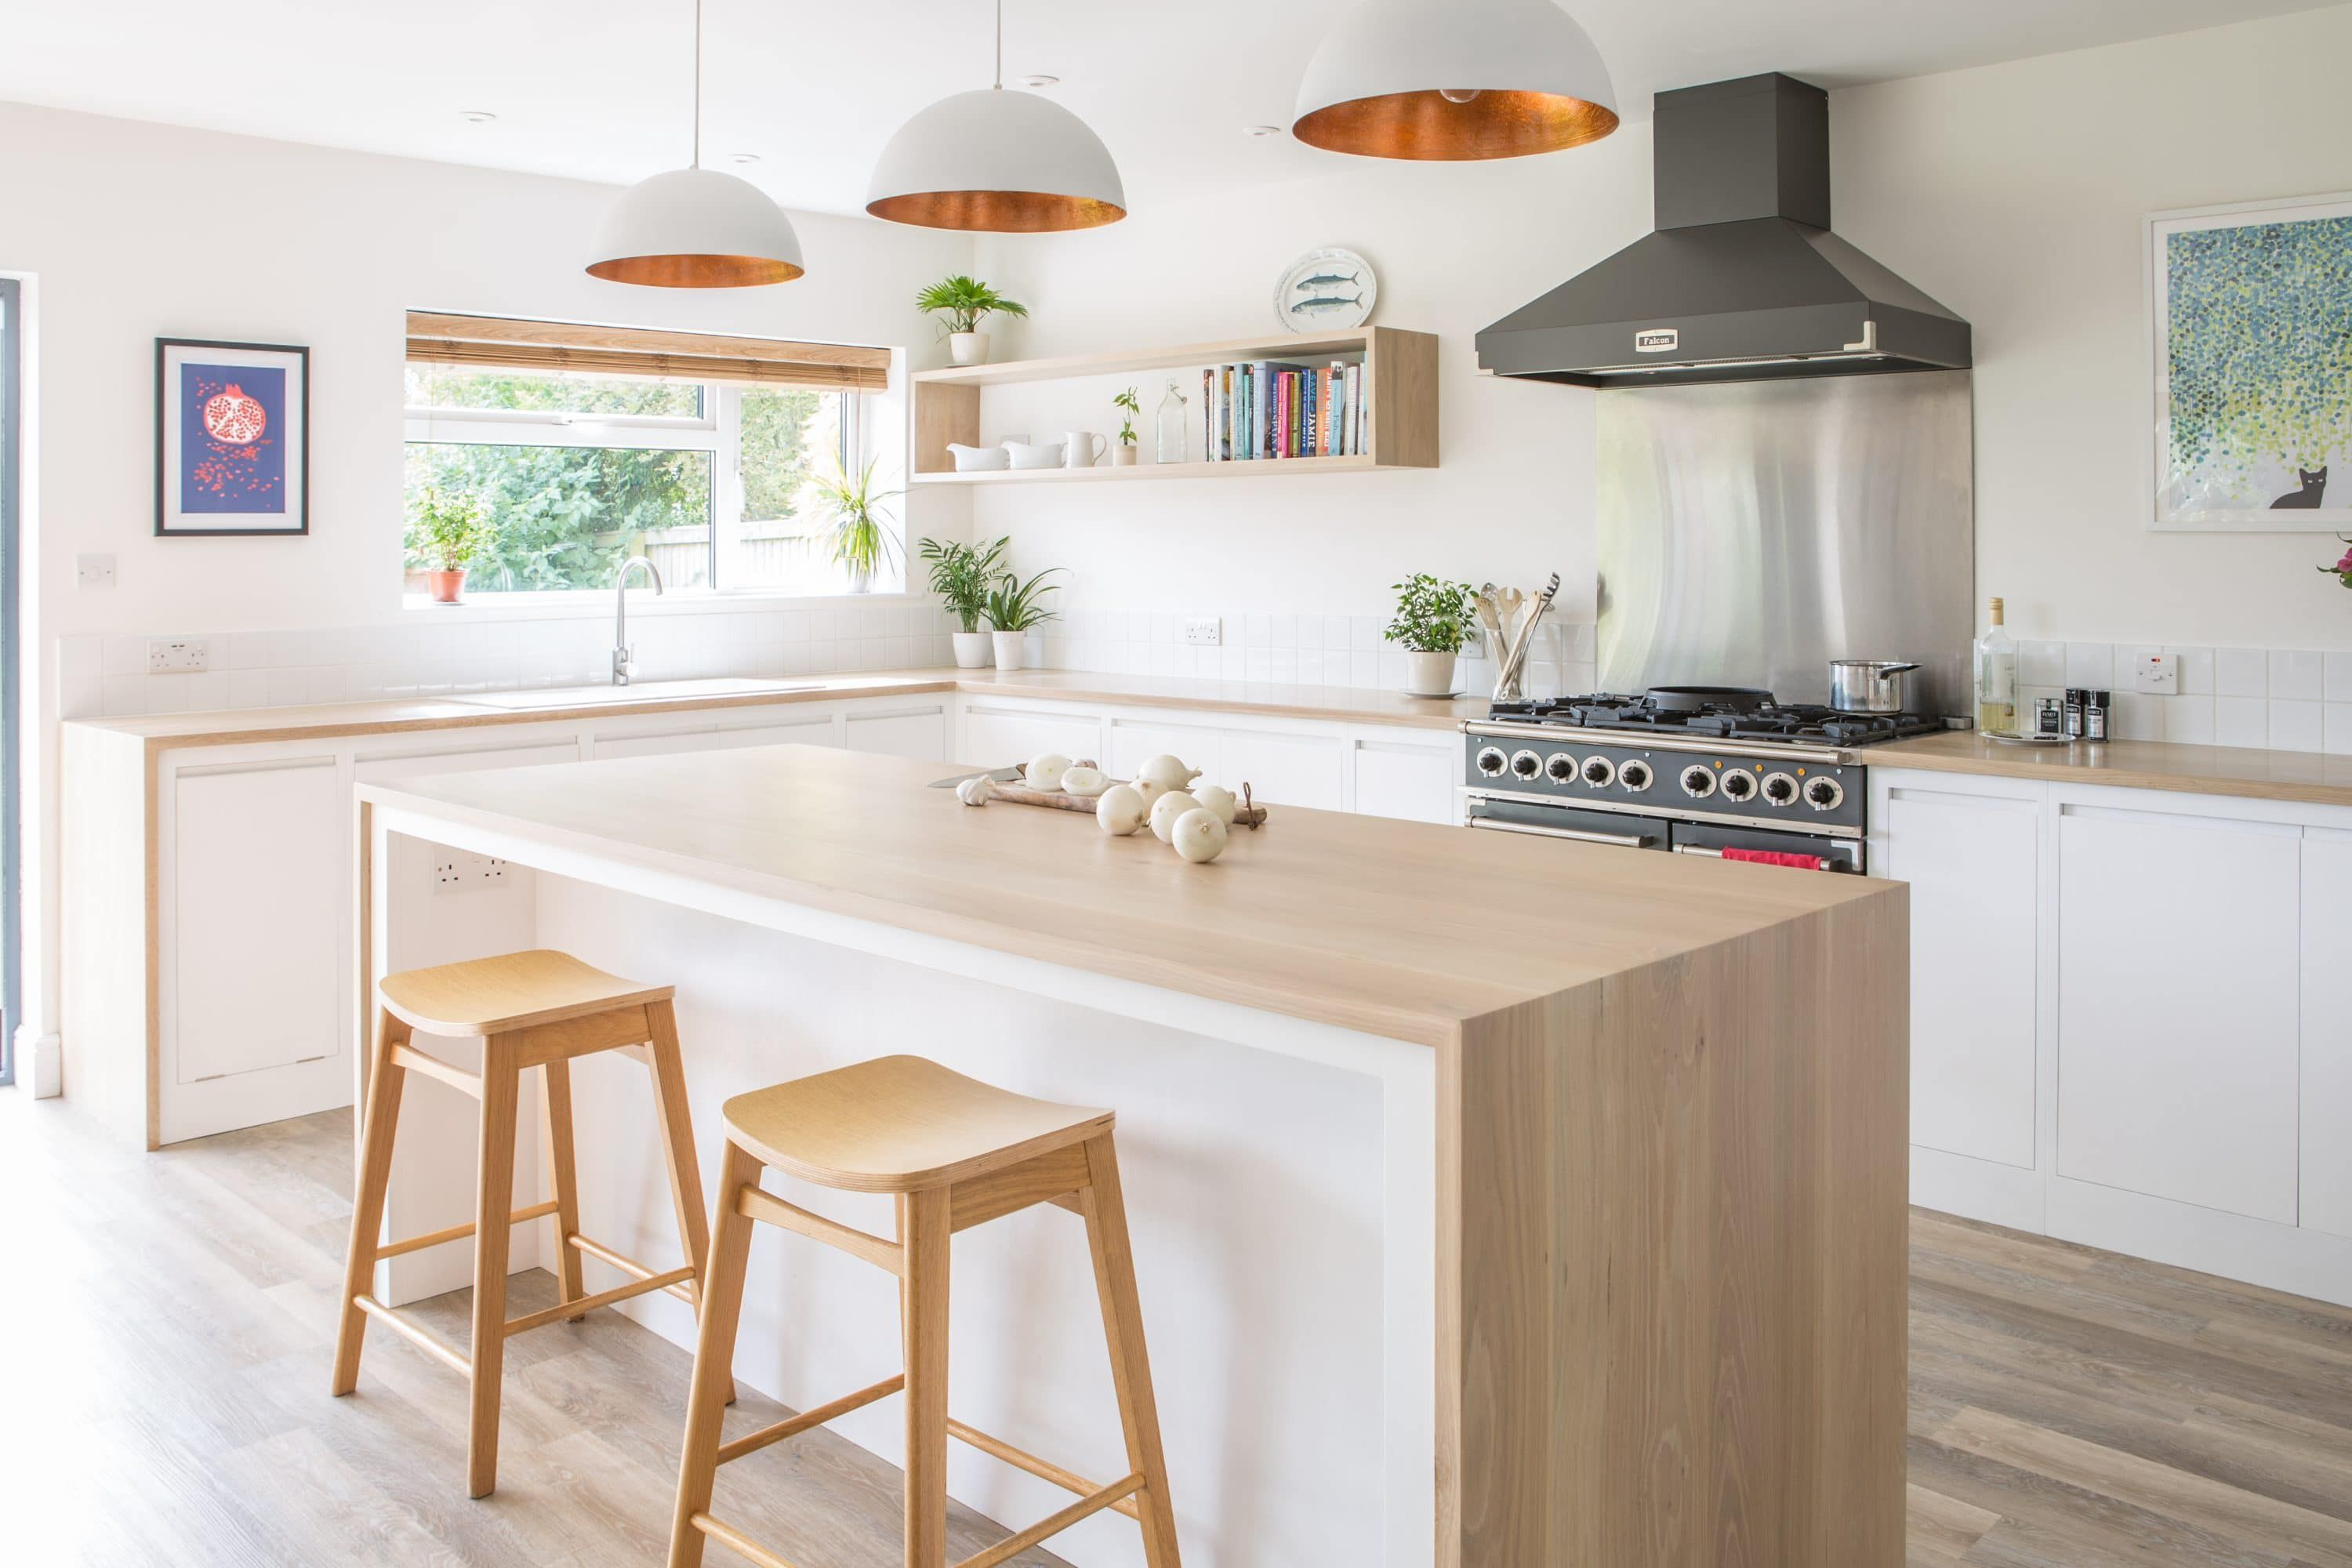 View Of Flat Panel Minimalist White Kitchen With Oak Wrapped Island And Worktops Scandinavian Kitchen Design Minimalist Kitchen Design Cottage Kitchen Design